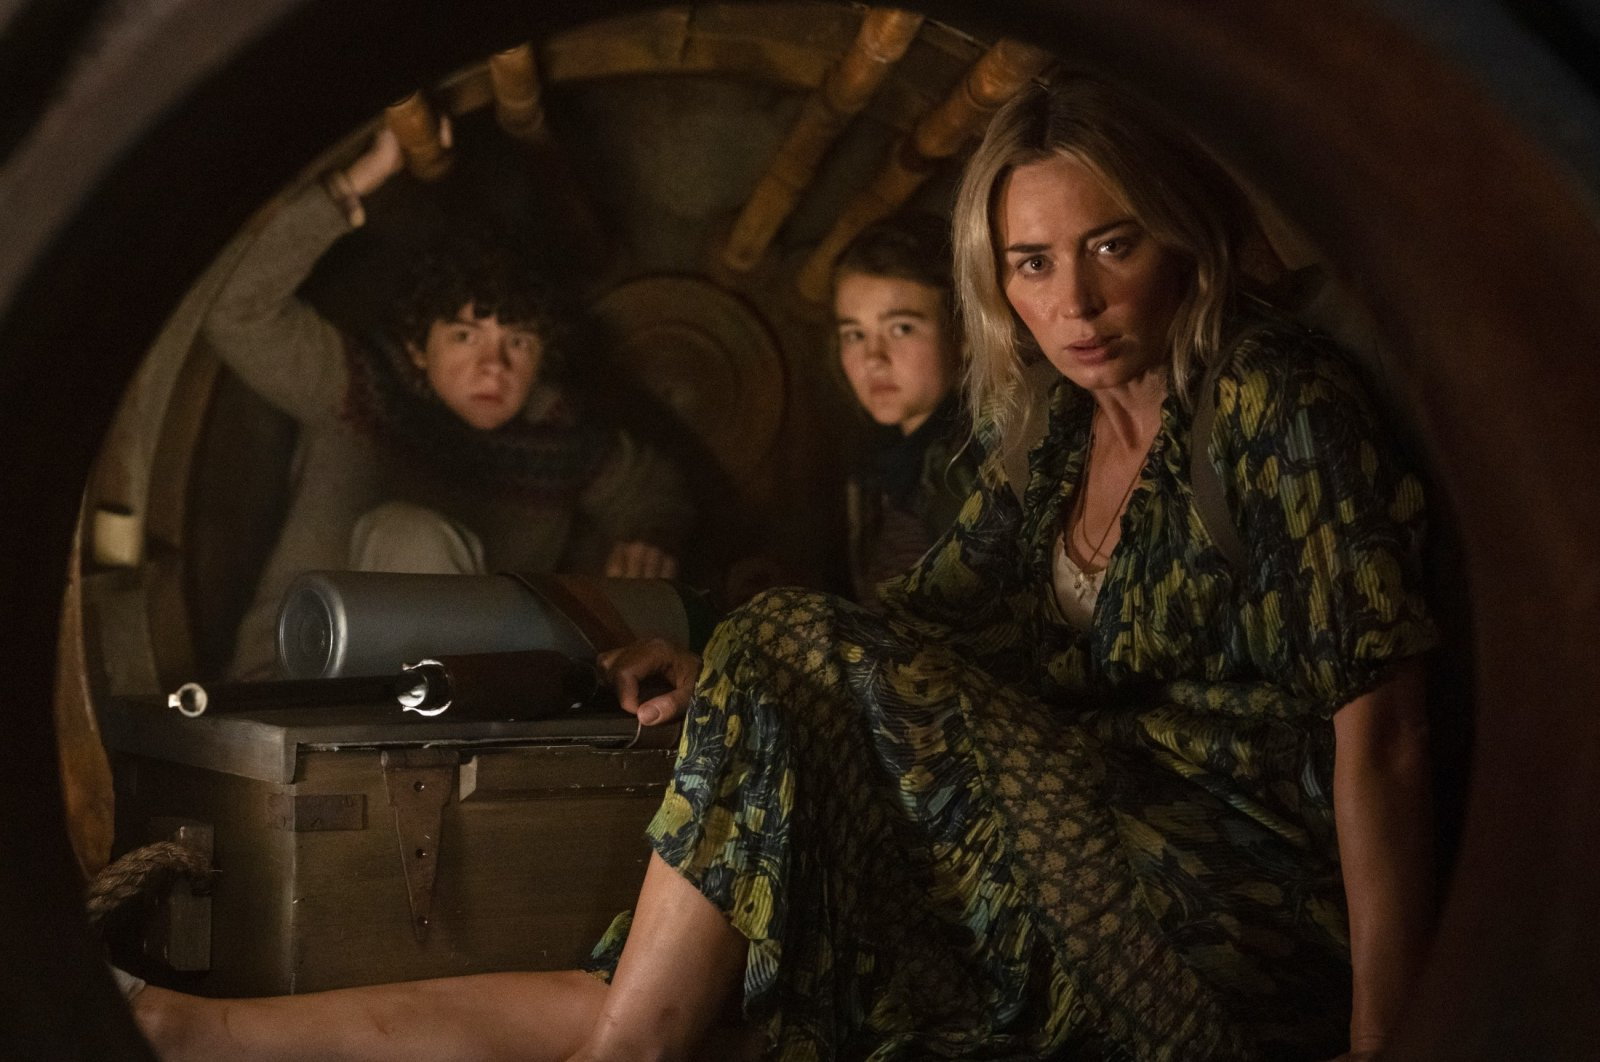 """Actors Noah Jupe (L), Millicent Simmonds and Emily Blunt (R) can be seen in a scene from """"A Quiet Place Part II."""" (Paramount Pictures via AP)"""